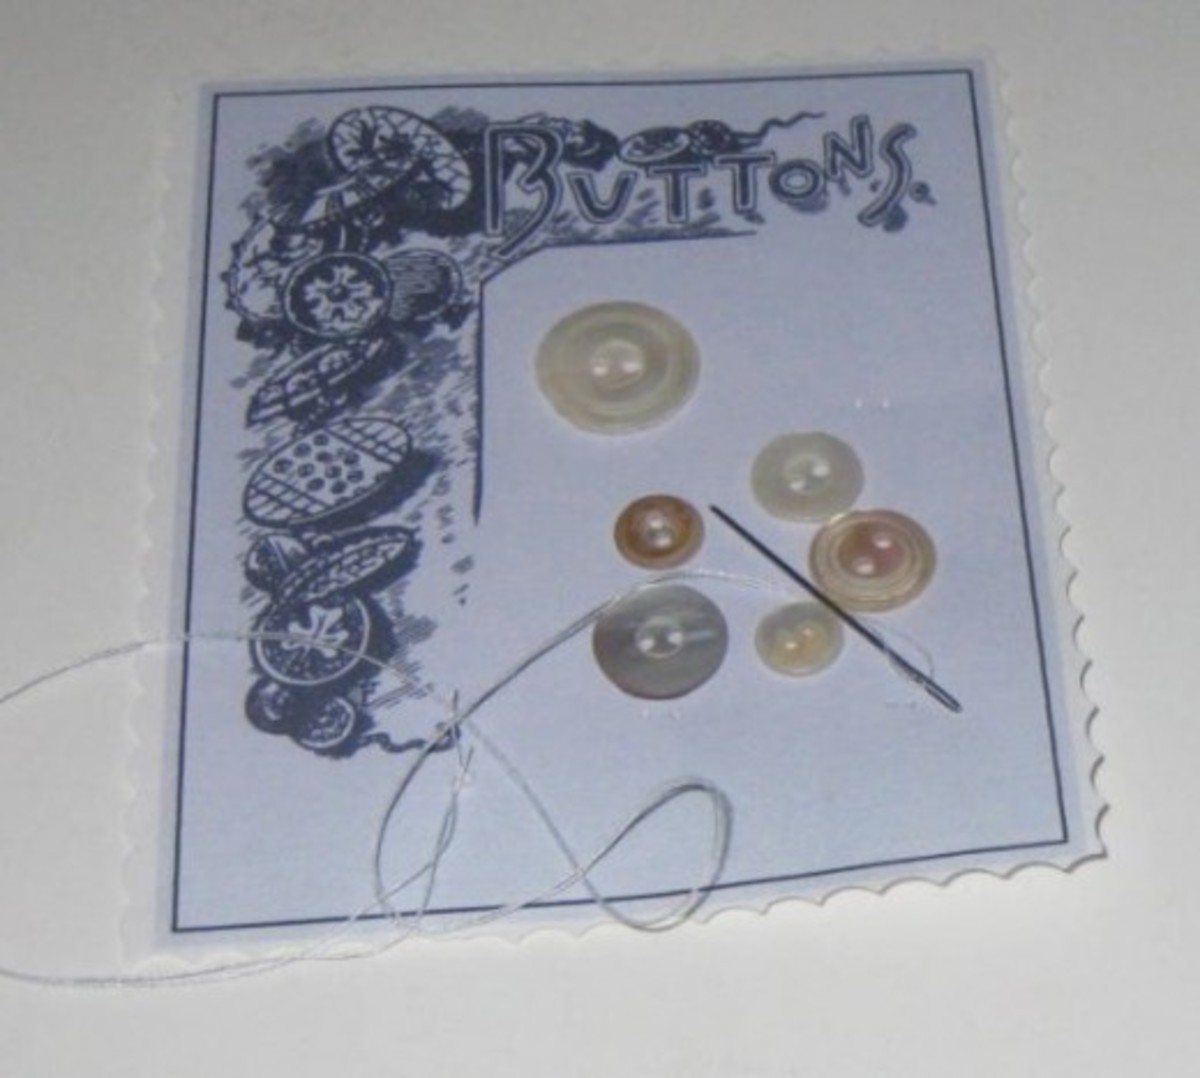 Use needle and thread to sew buttons on the card. Secure the thread on the back when all the buttons are sewn on.